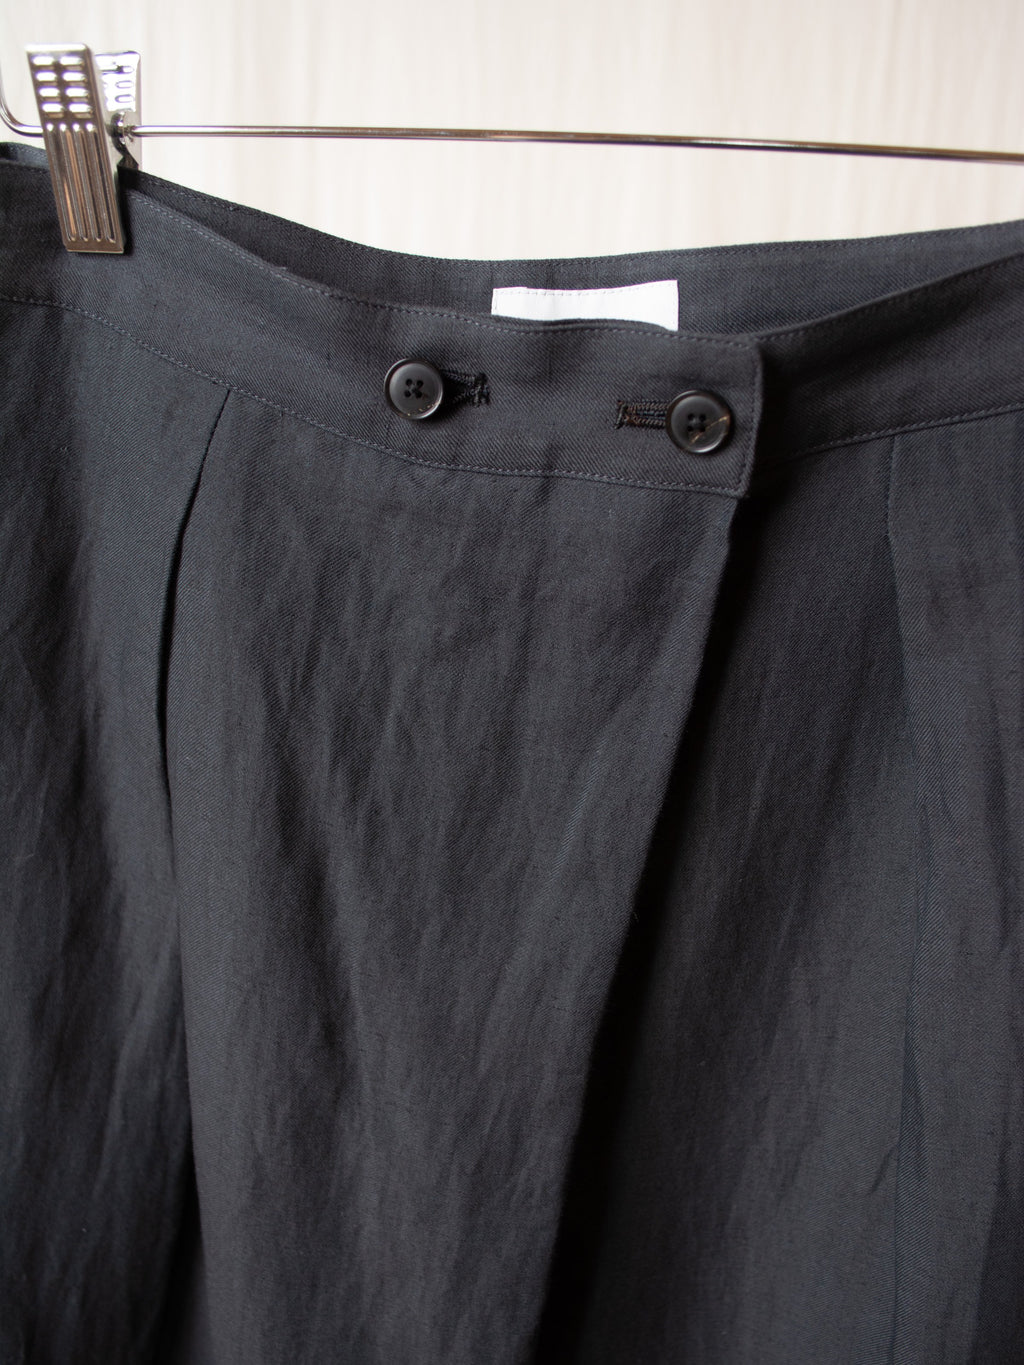 Namu Shop - Phlannel Linen Cotton Wool Twill Wide Trousers - Charcoal Black